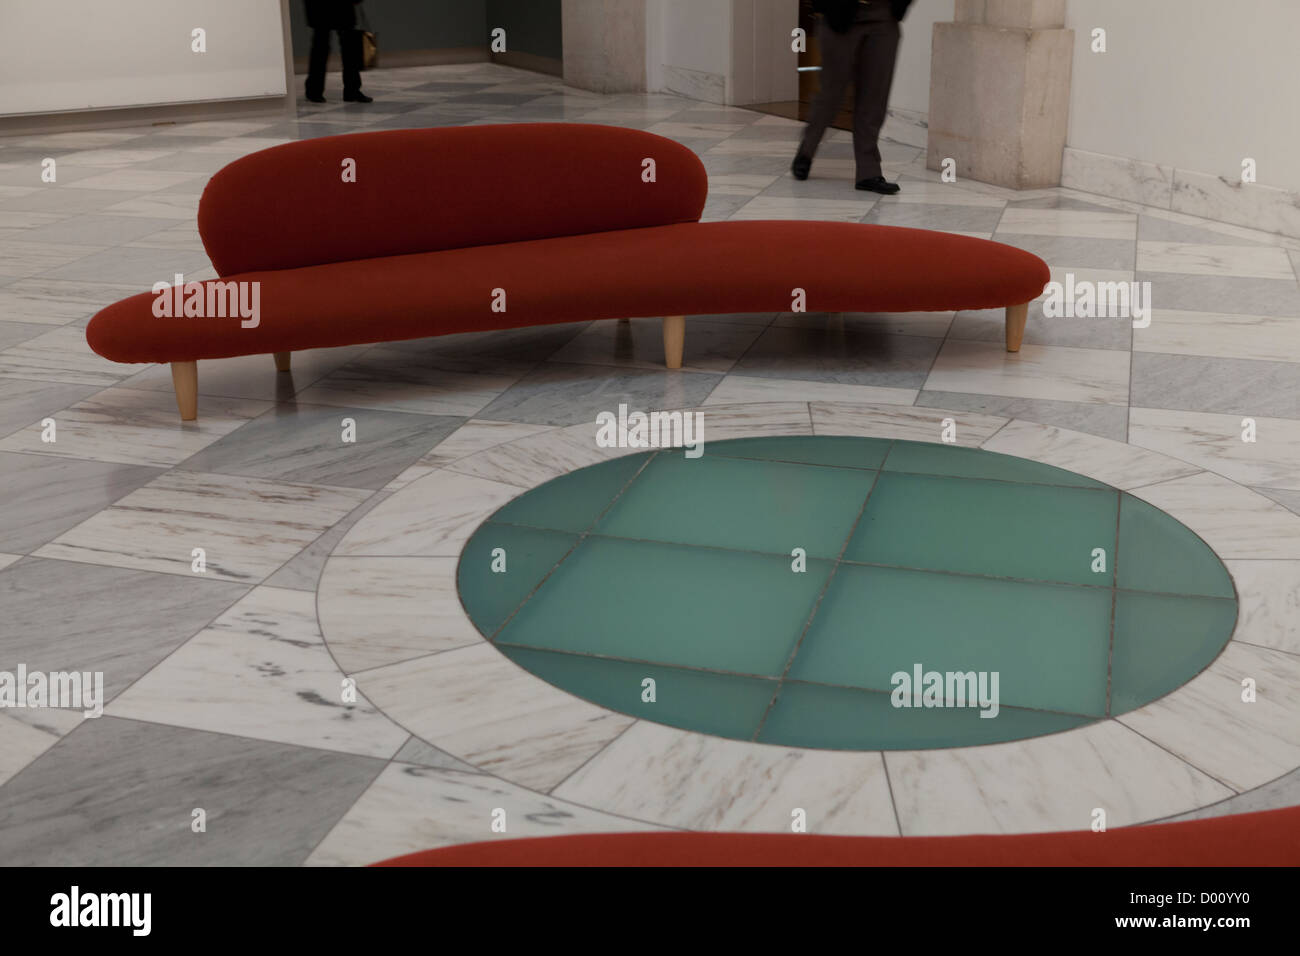 Contemporary Seating Contemporary Seating Design In Lobby Stock Photo 51653028 Alamy